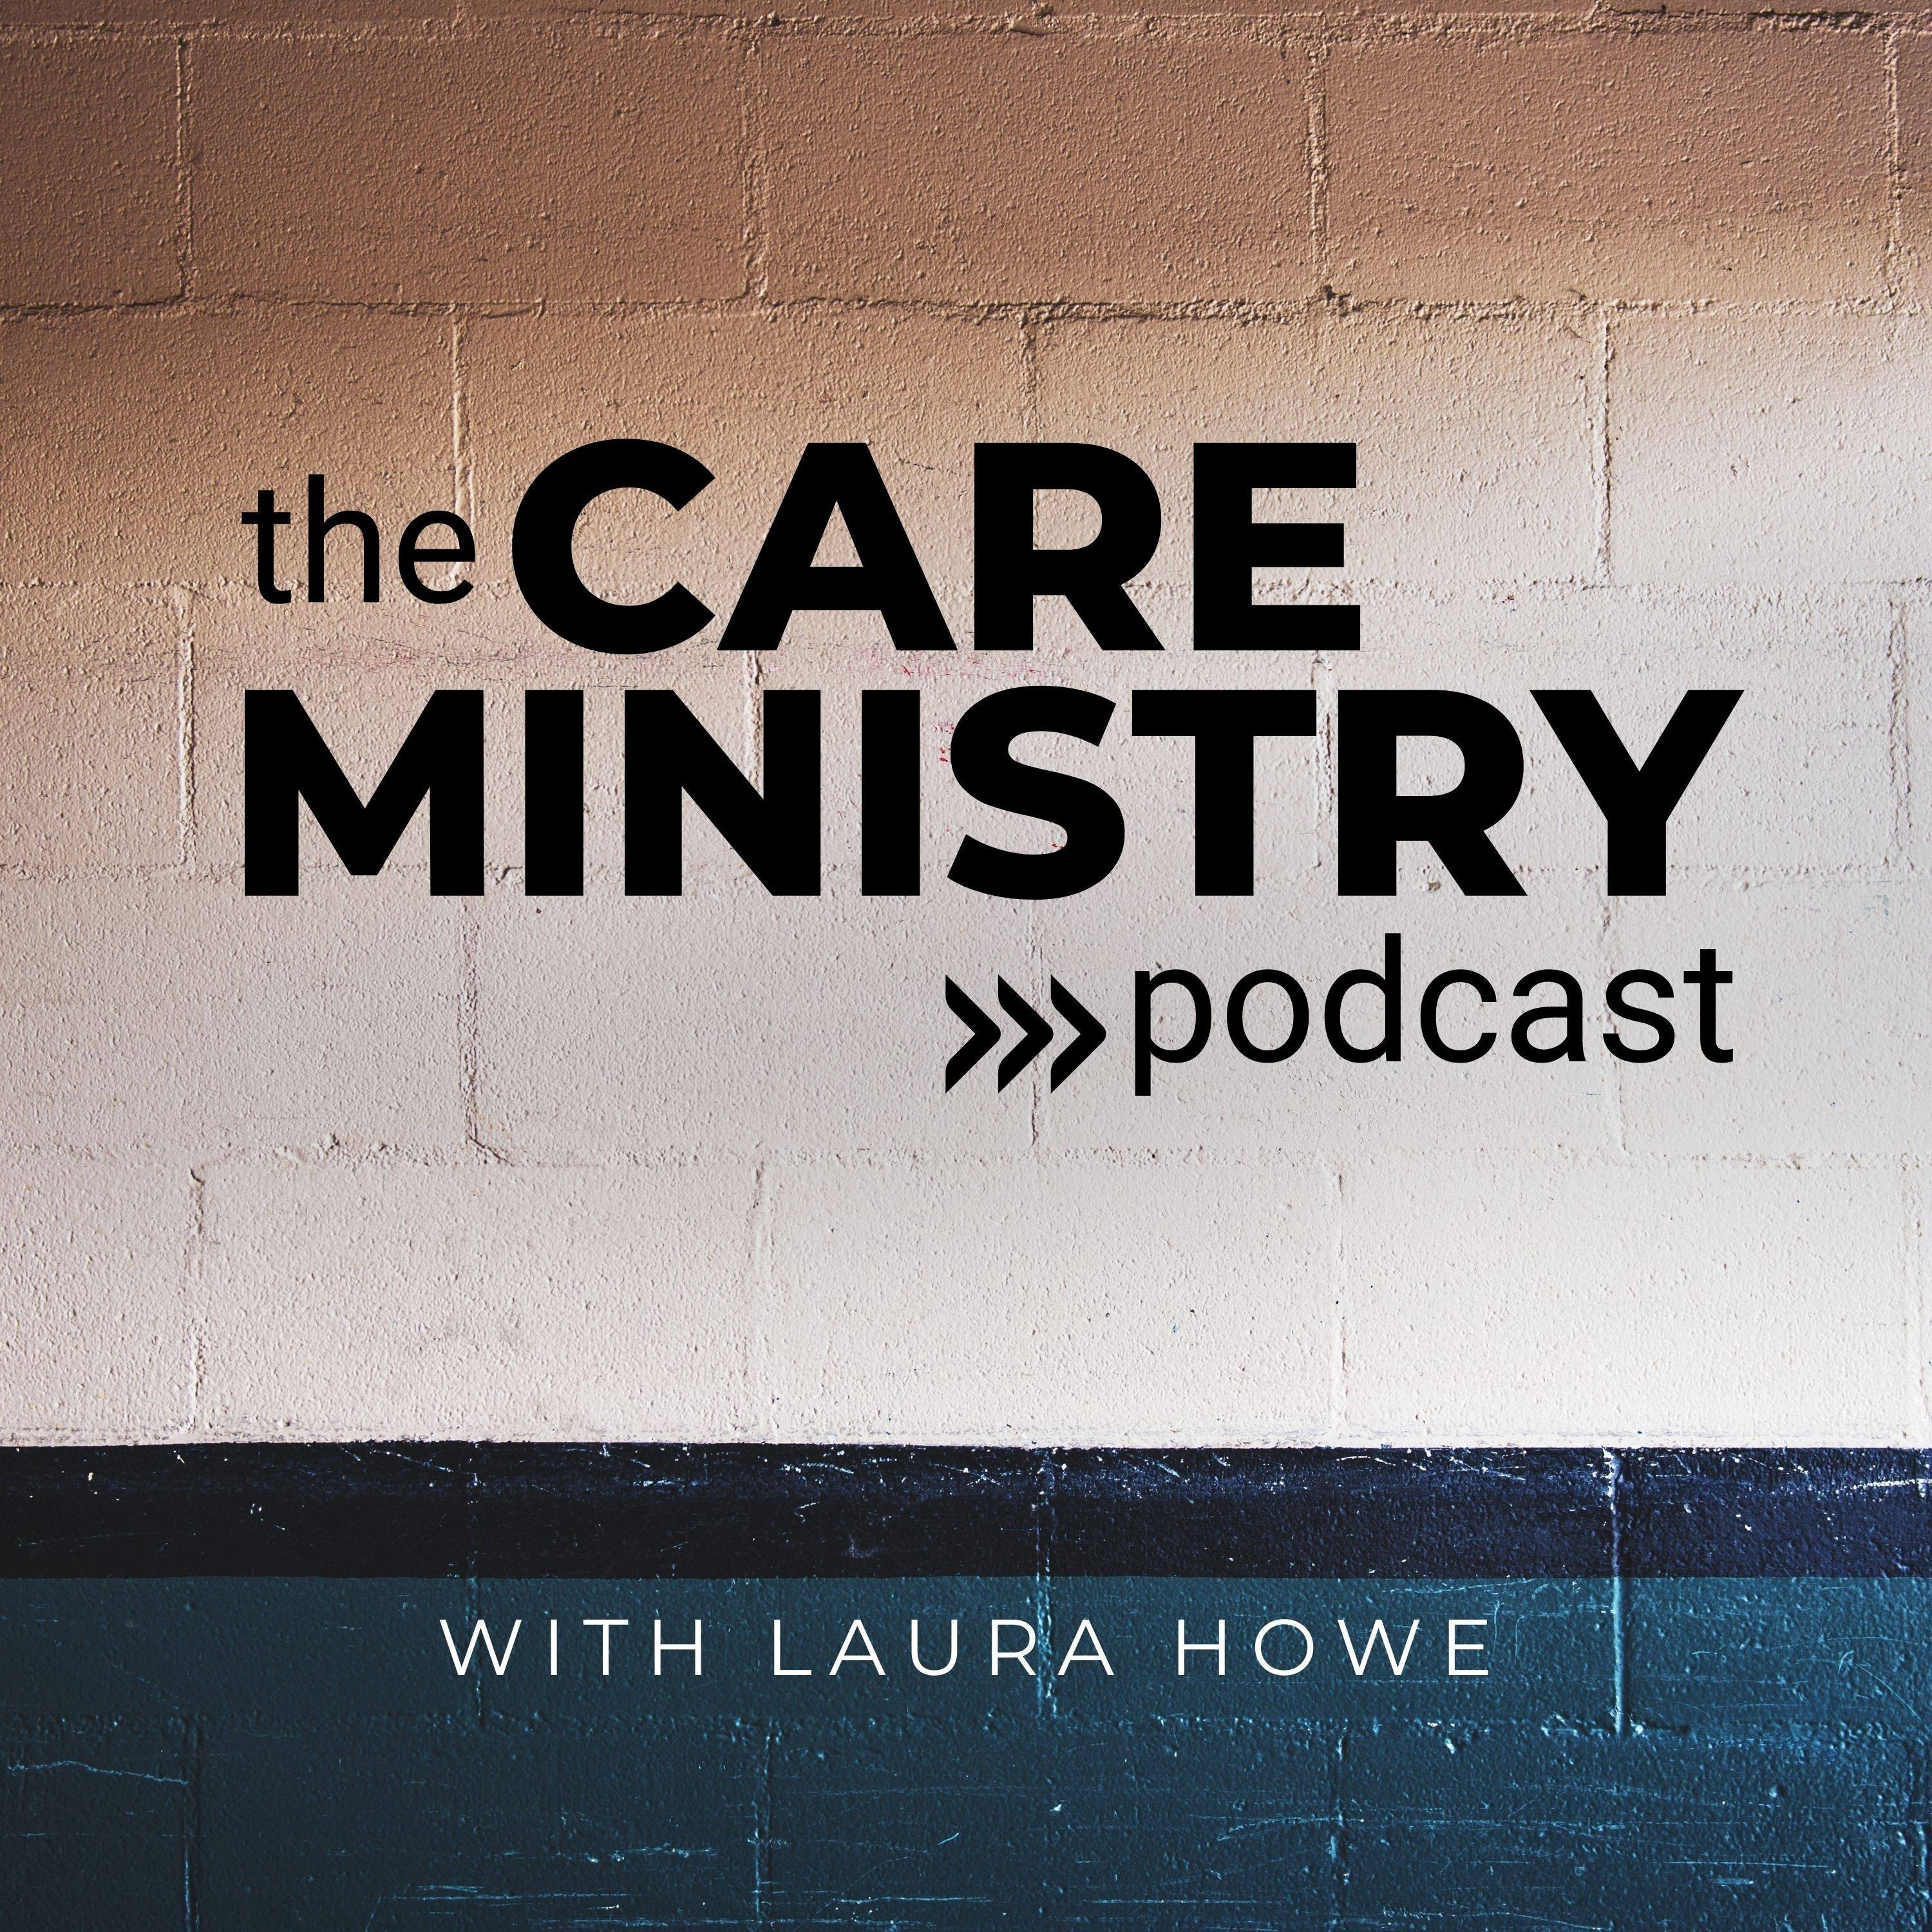 The Care Ministry Podcast